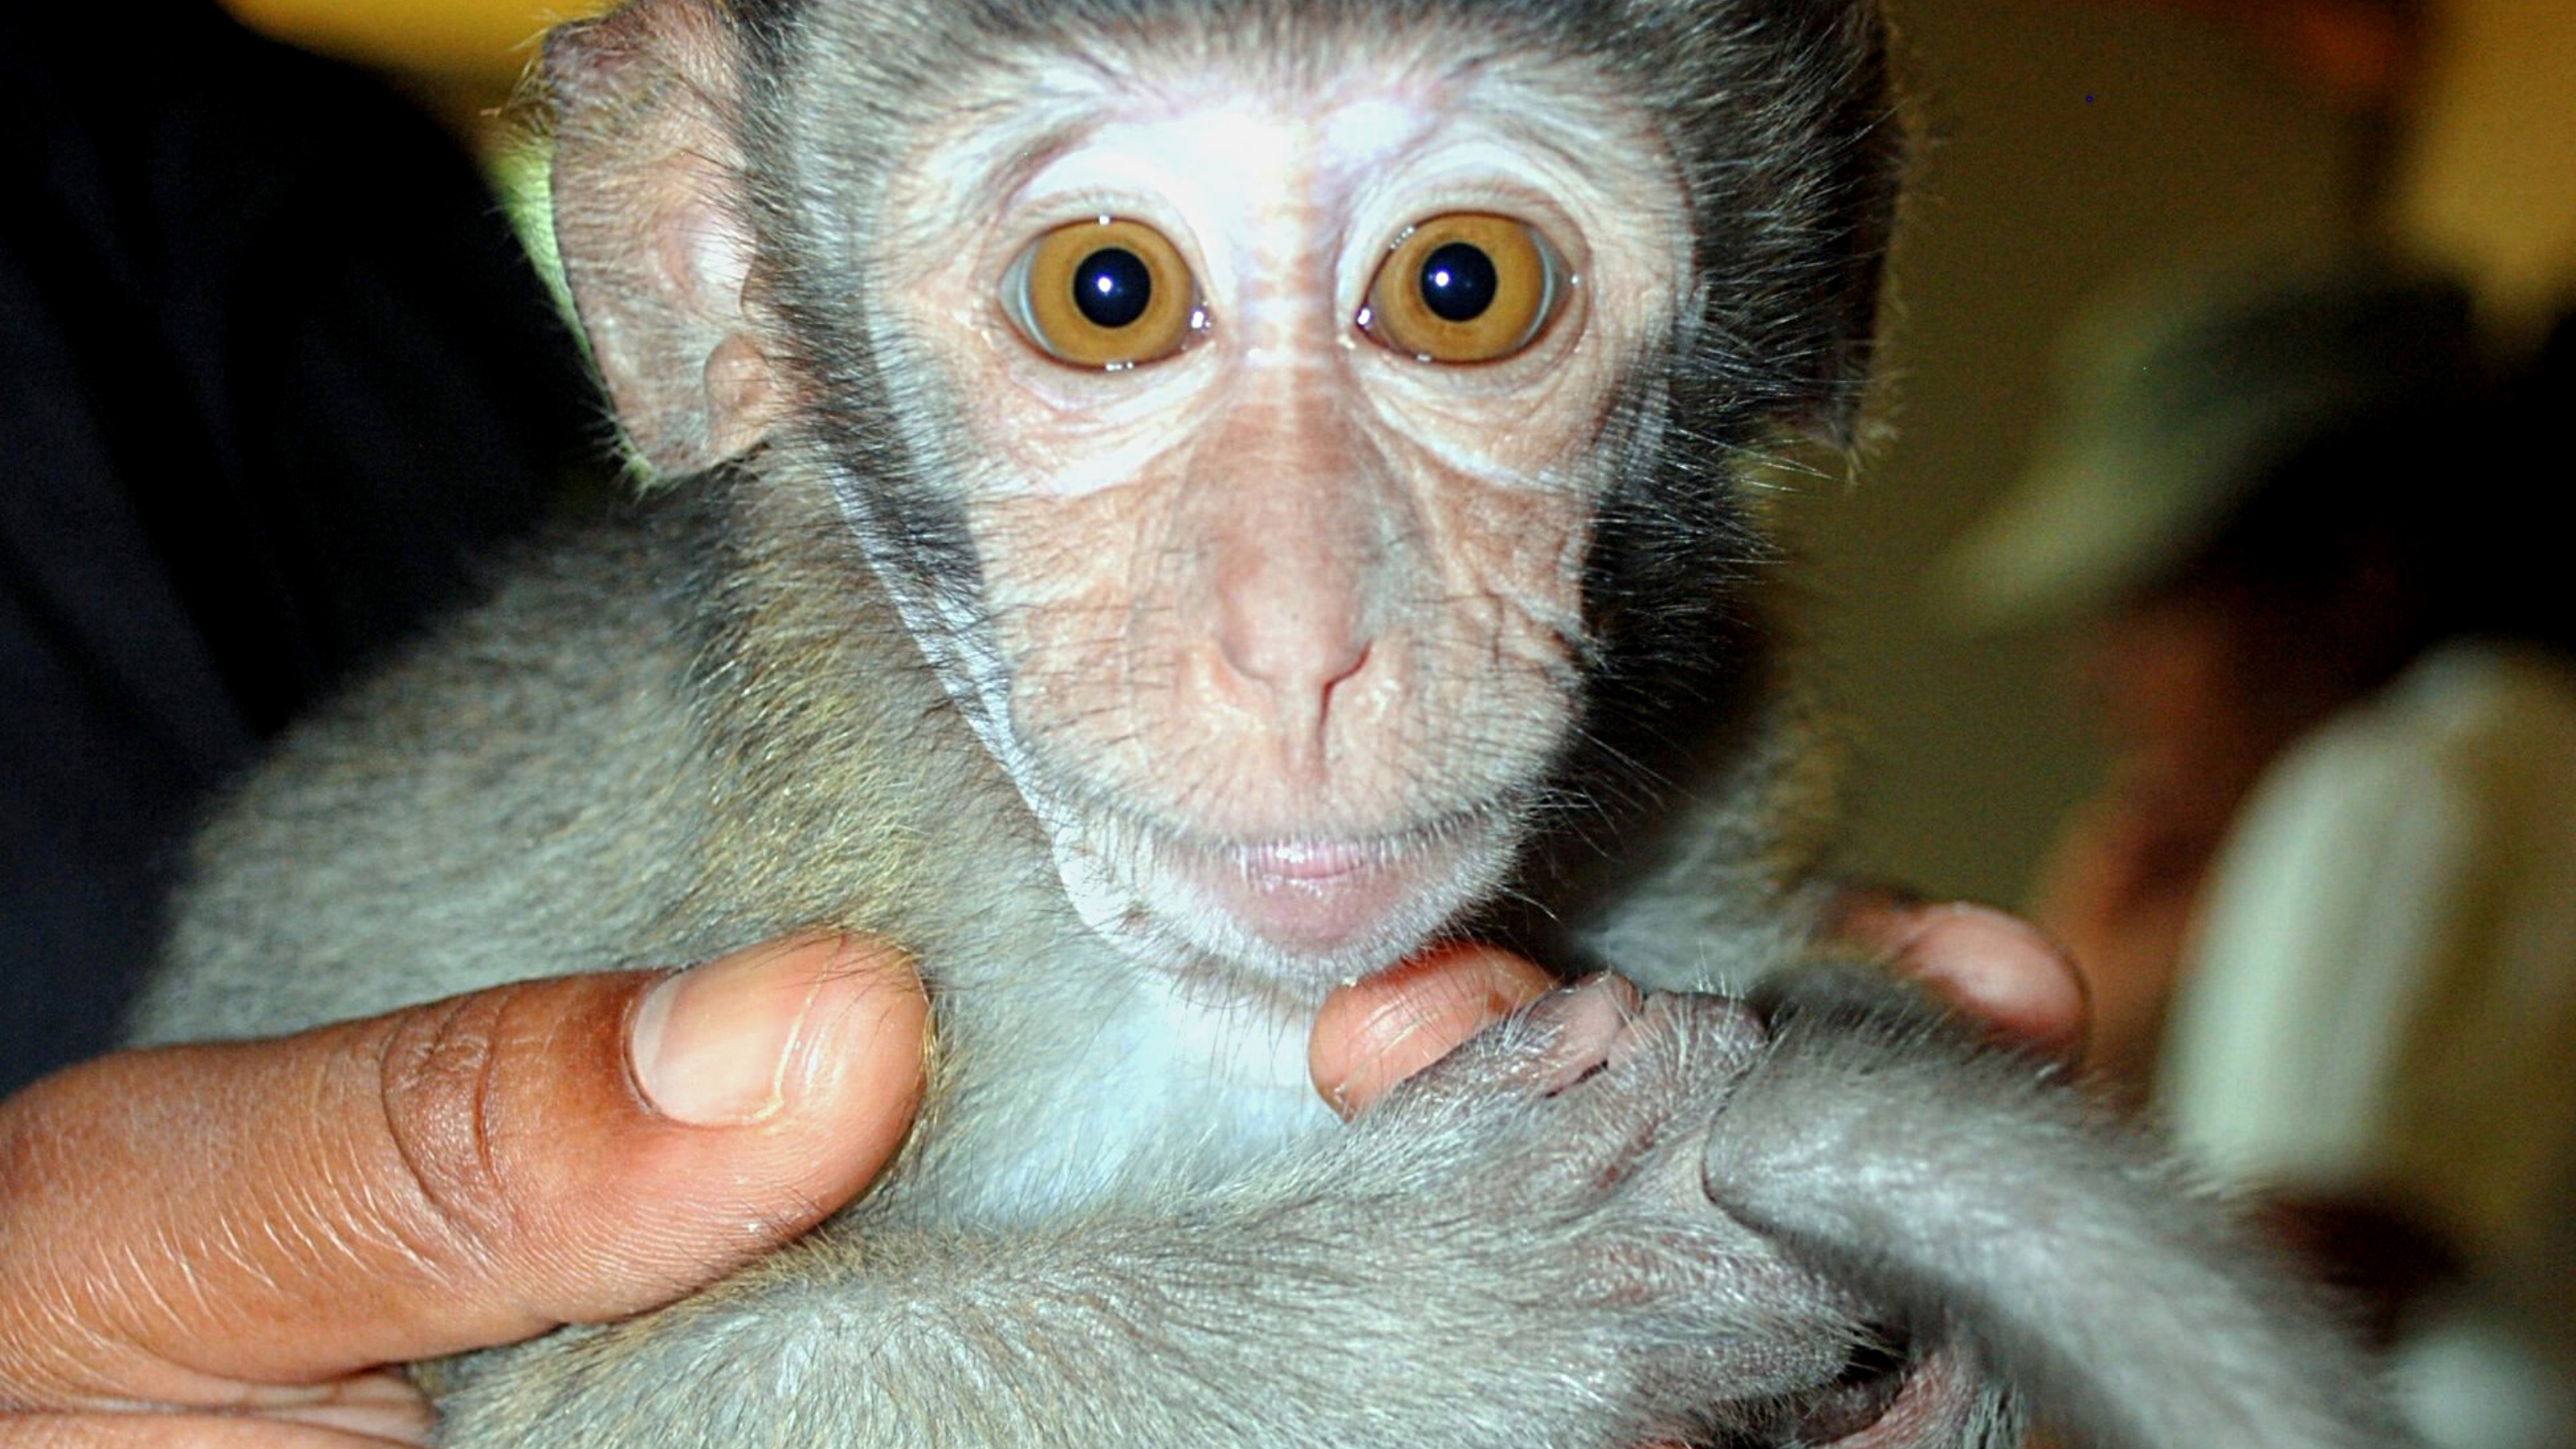 Photo of a young monkey held by human hands